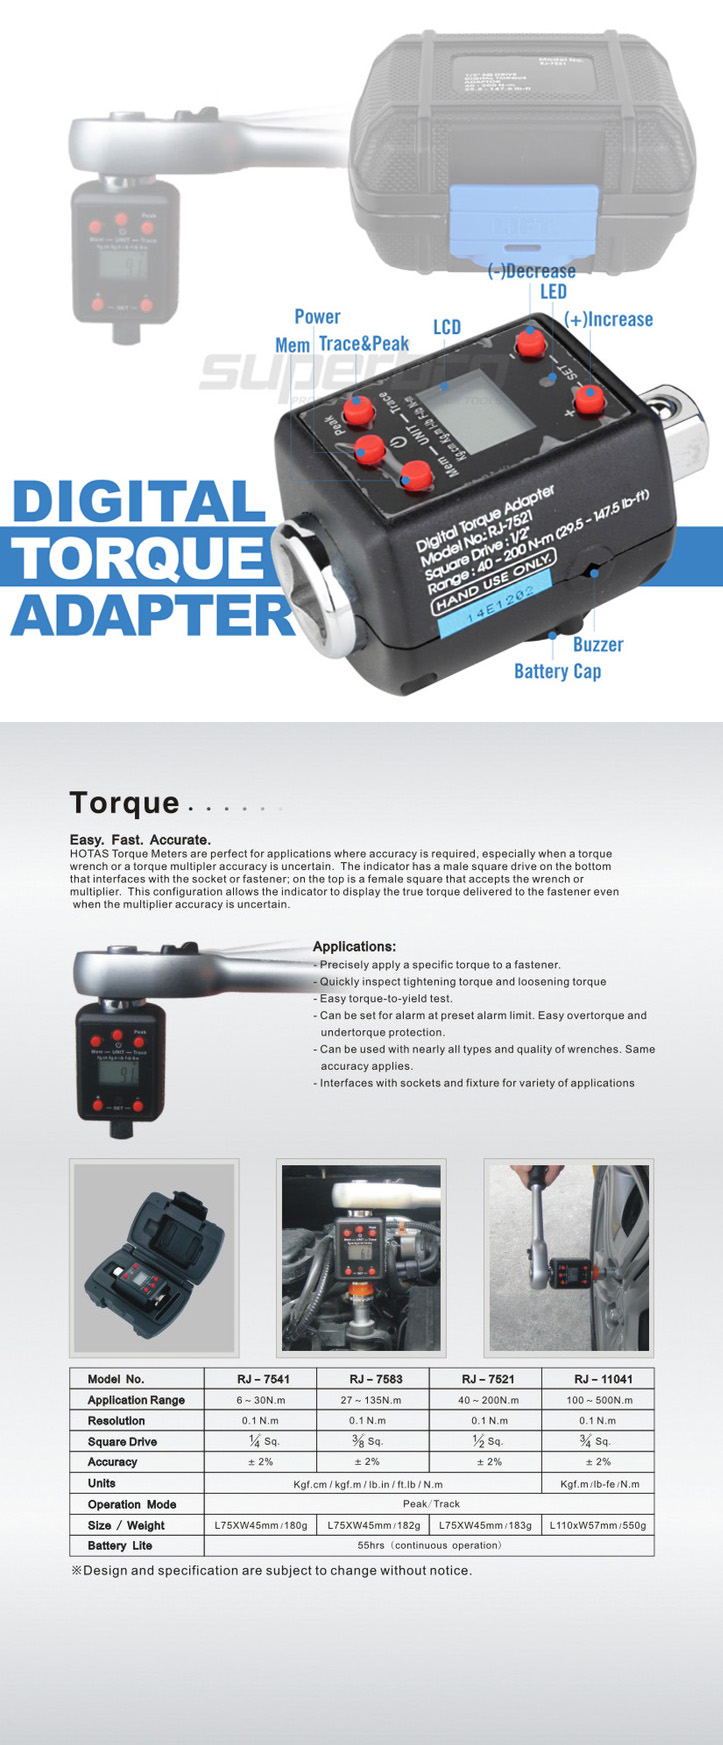 Digital Torque Adapter